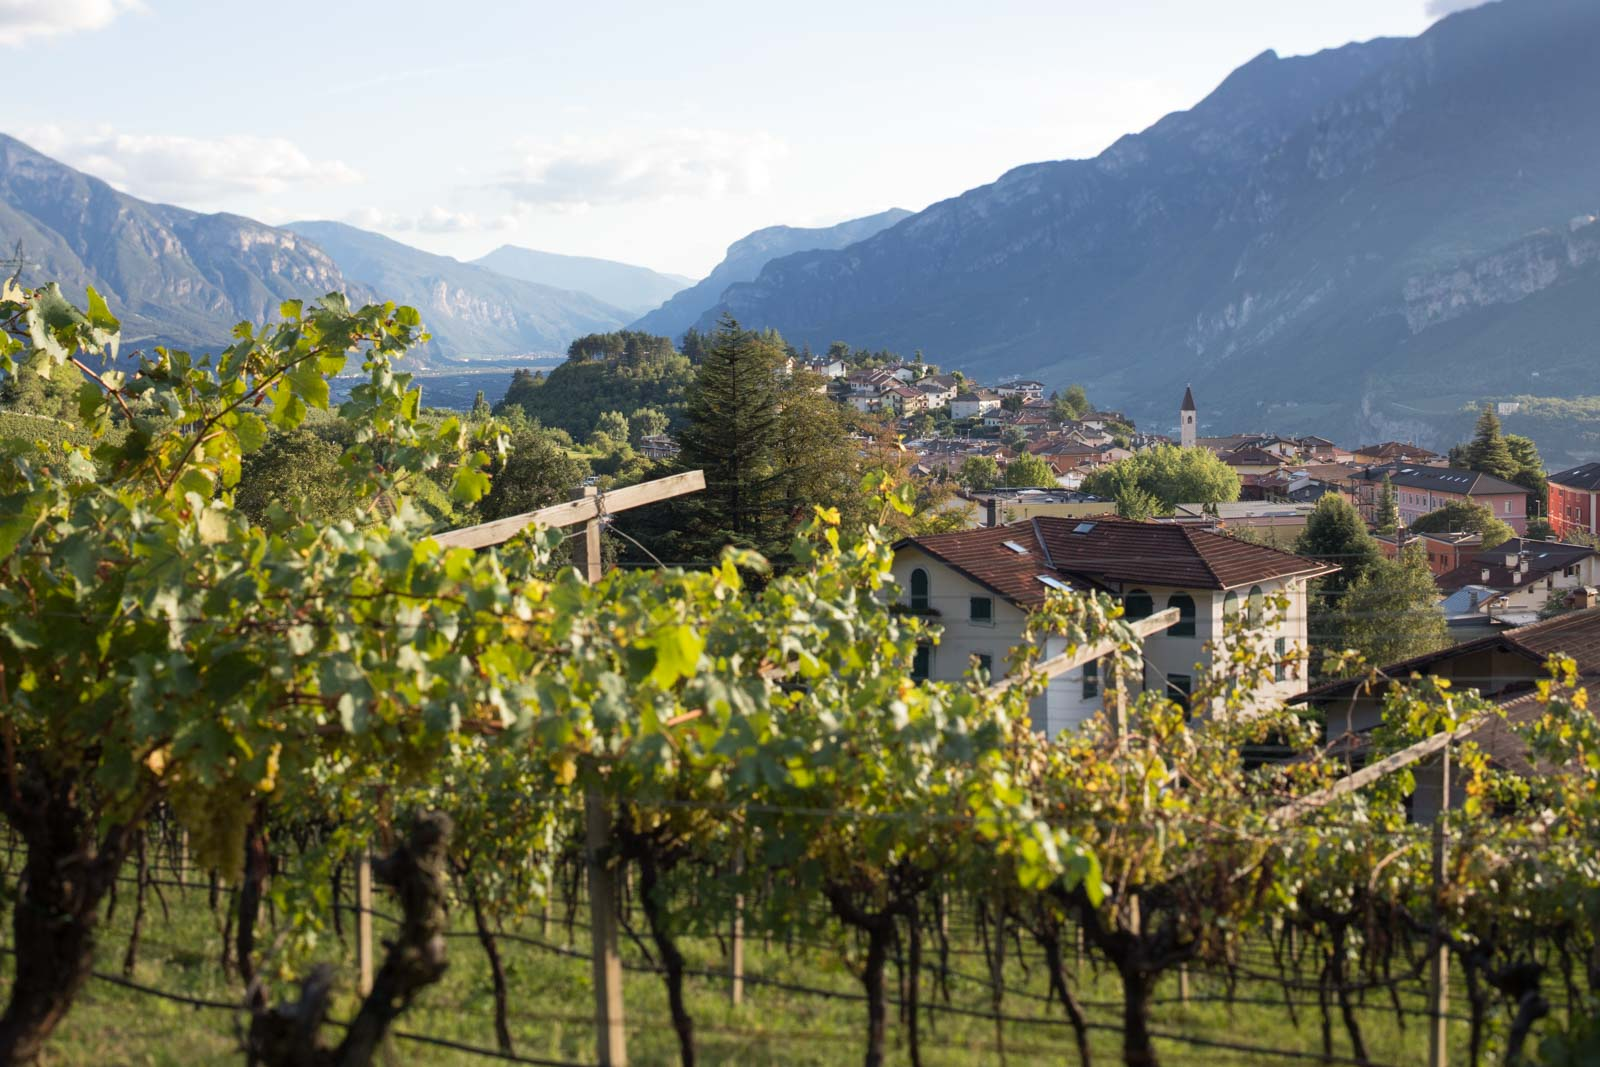 A view over the pergola-trained vines at Maso Martis, an organic and family-owned estate in Trentodoc, Trento, Italy. ©Kevin Day/Opening a Bottle